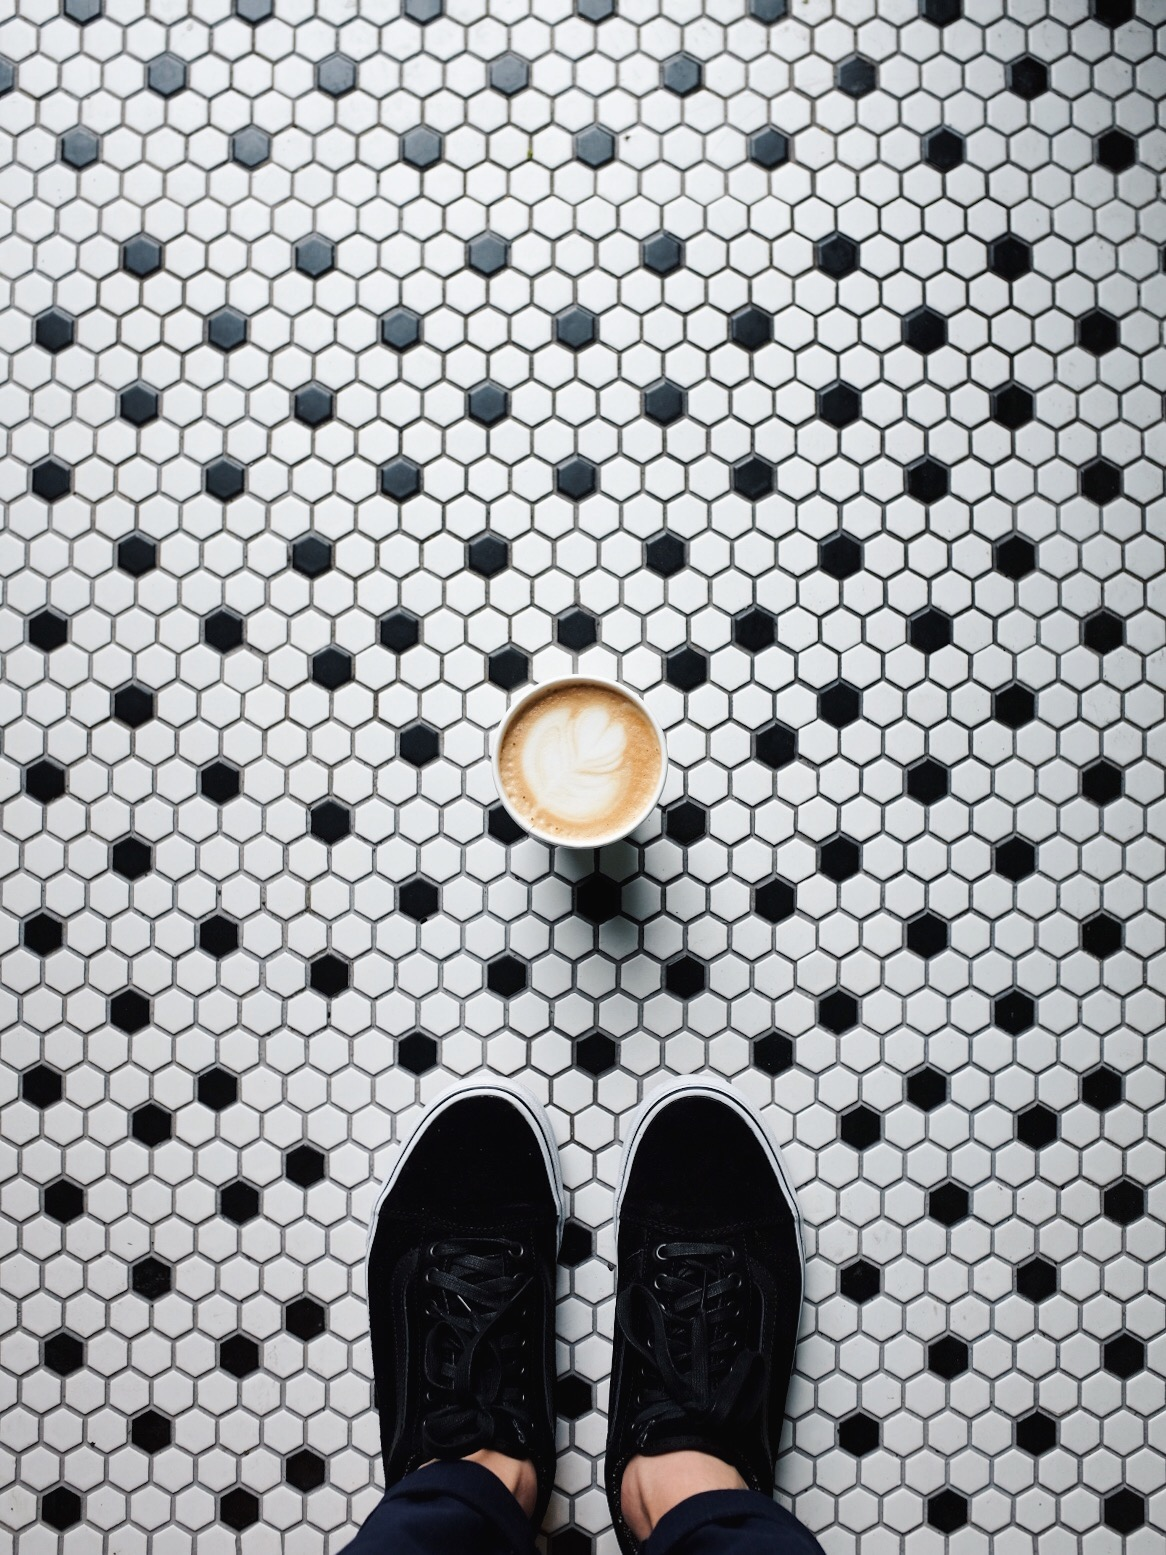 coffee shot on tiles vans